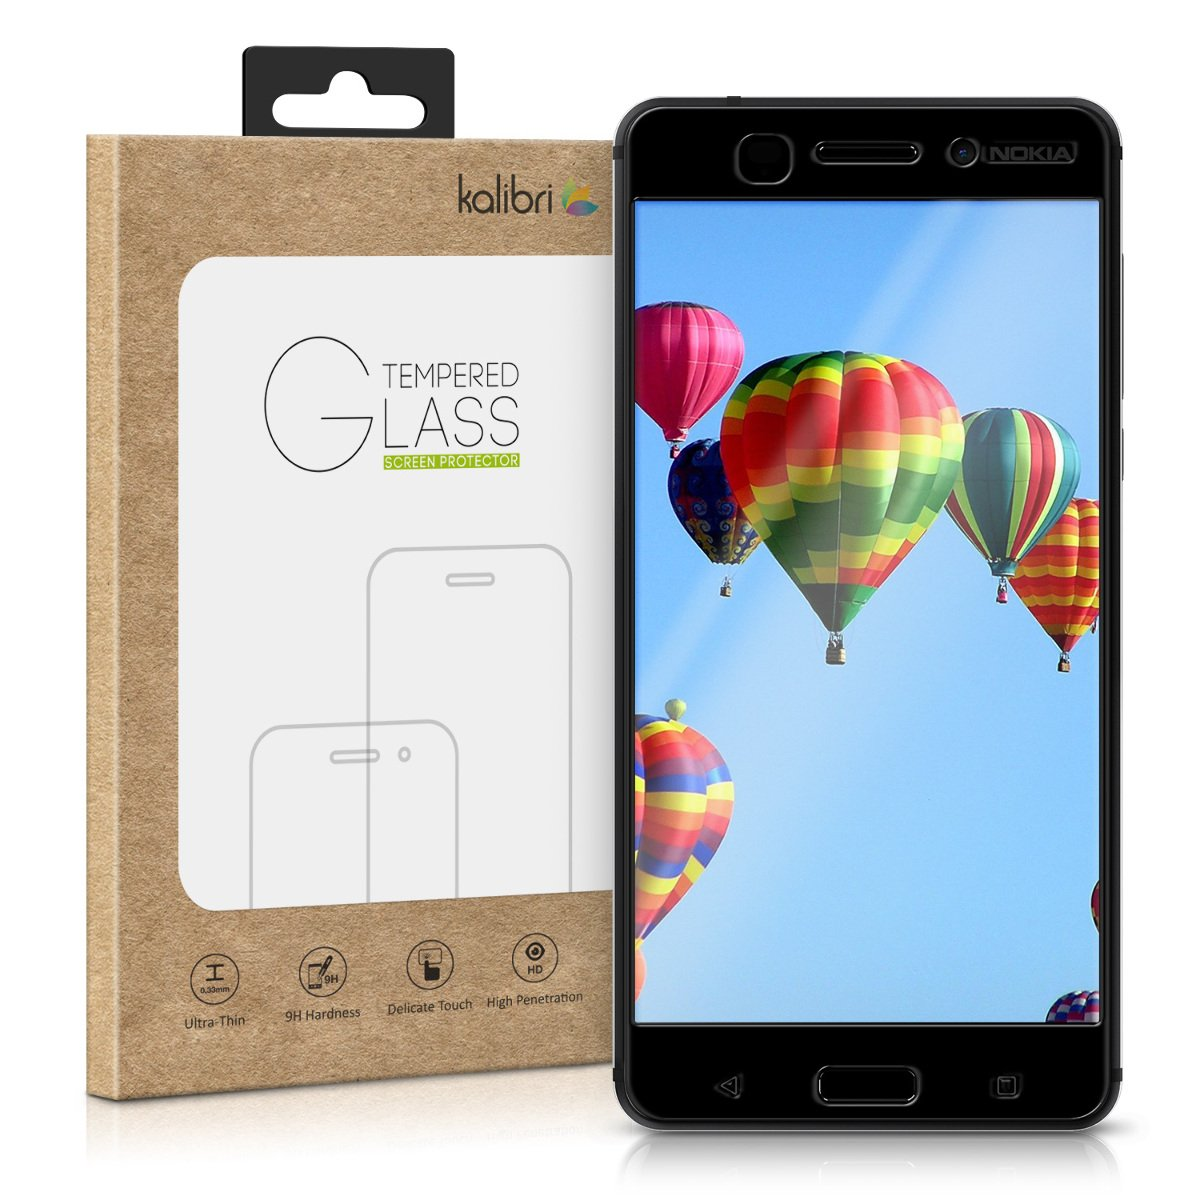 70%OFF kalibri Tempered glass screen protector for Nokia 6 (2017) 3D protective glass Full Cover Screen Protector with frame in Black